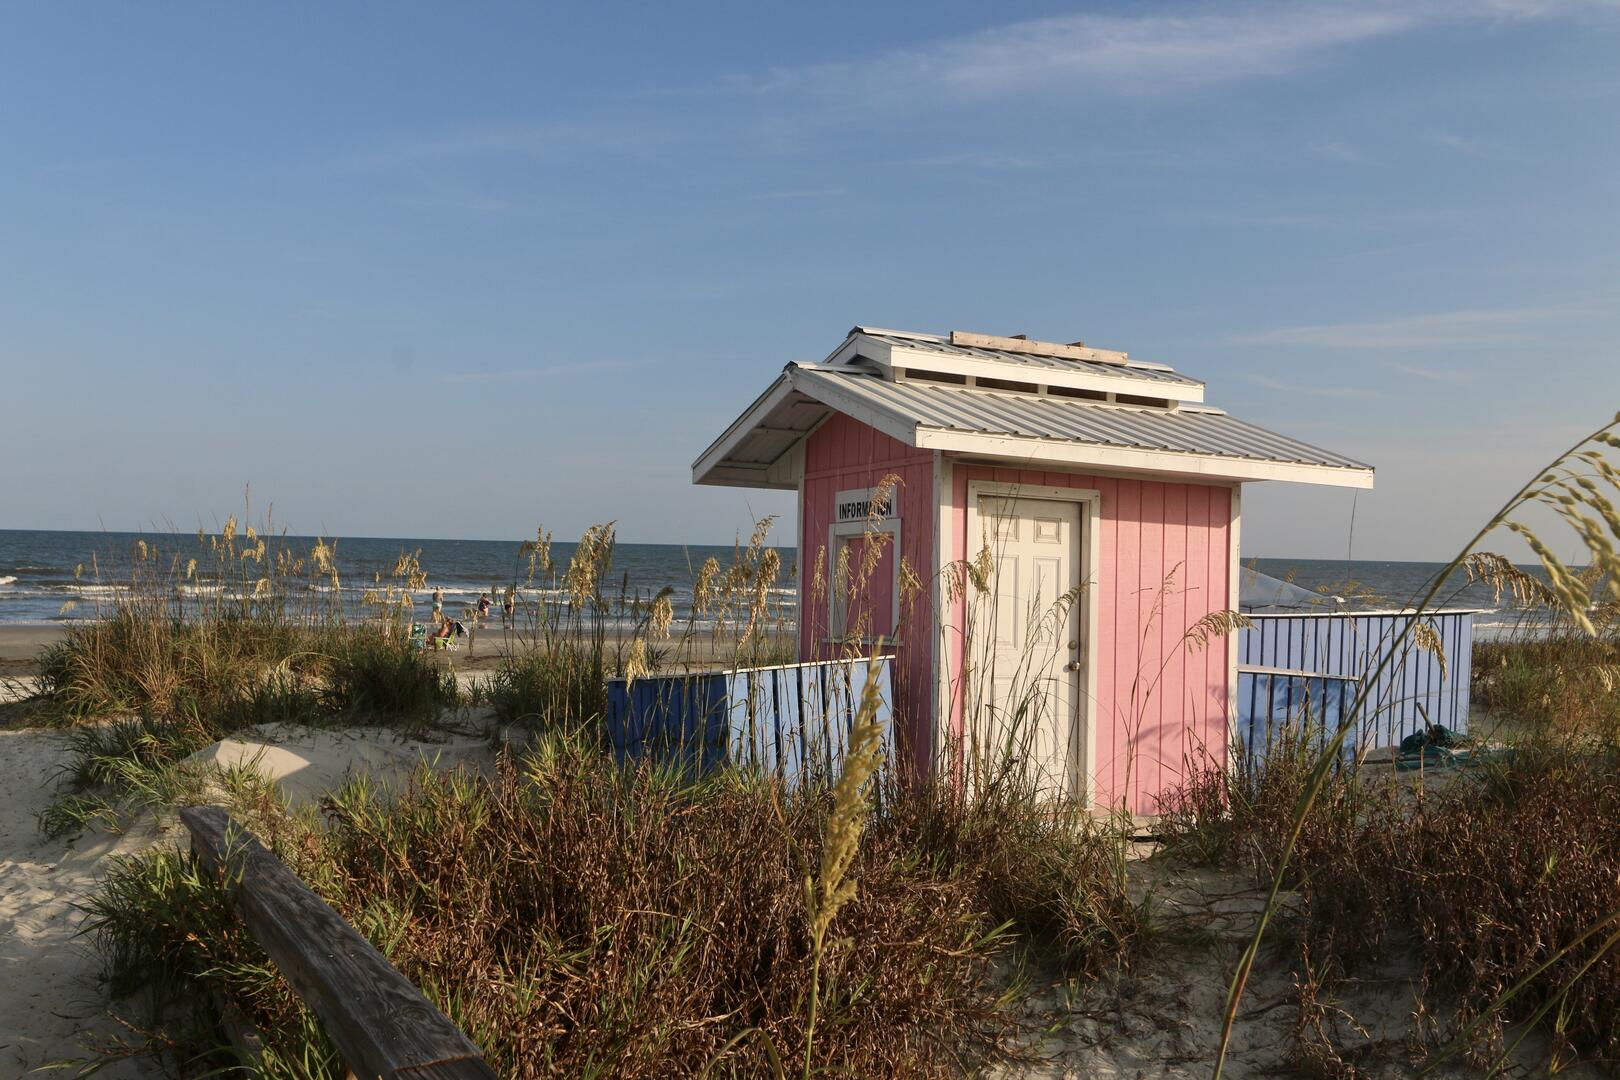 Beach Hut-Renting chairs and umbrellas